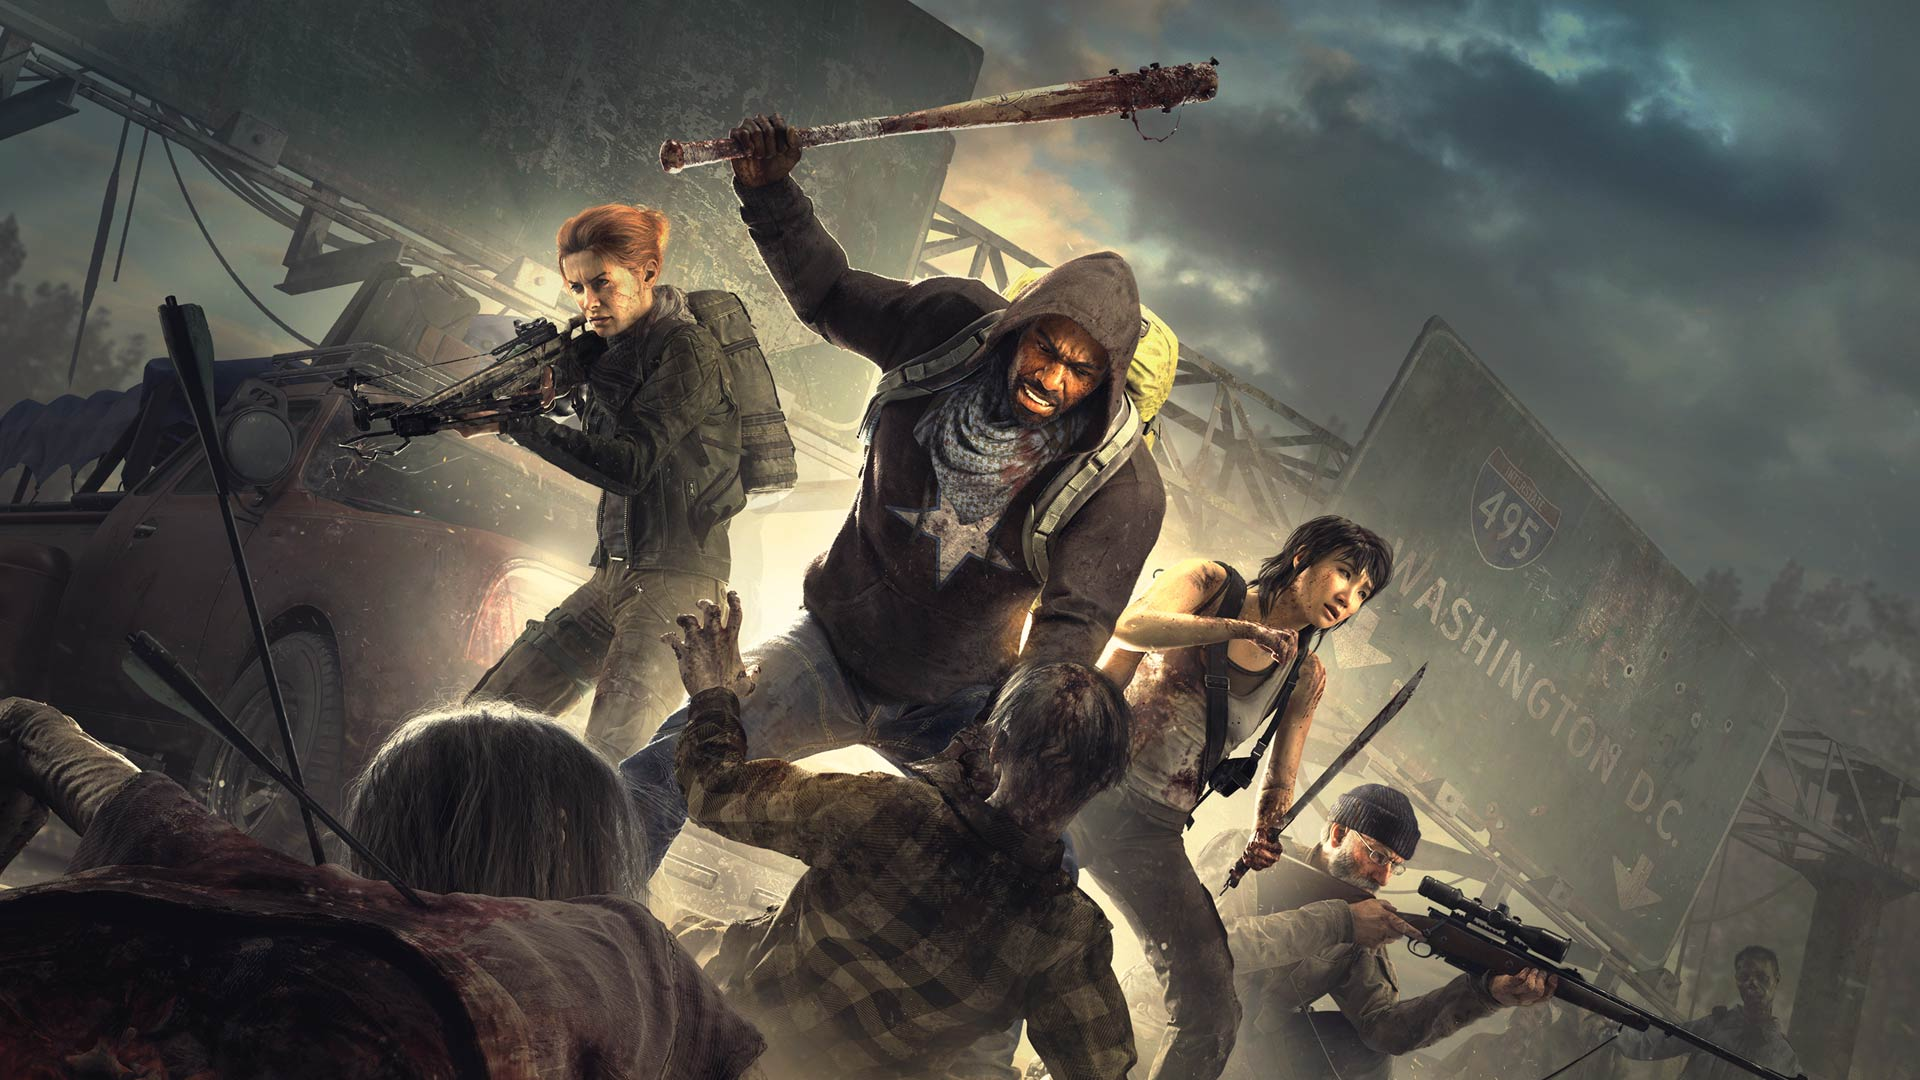 Overkill's The Walking Dead Officially Delayed on Consoles, No Release Window Detailed